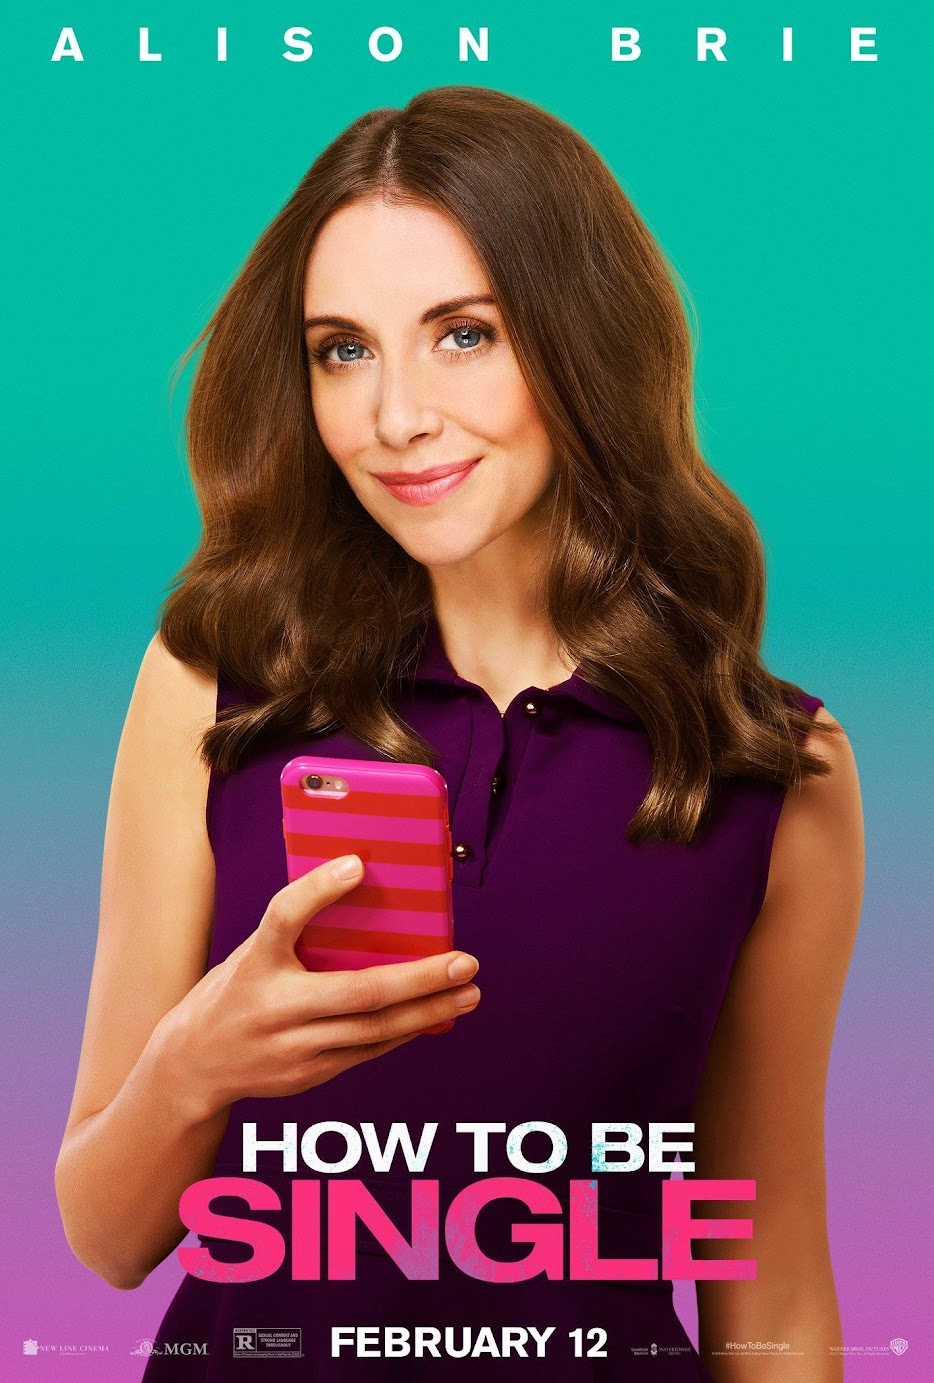 How To Be Single Alison Brie Poster